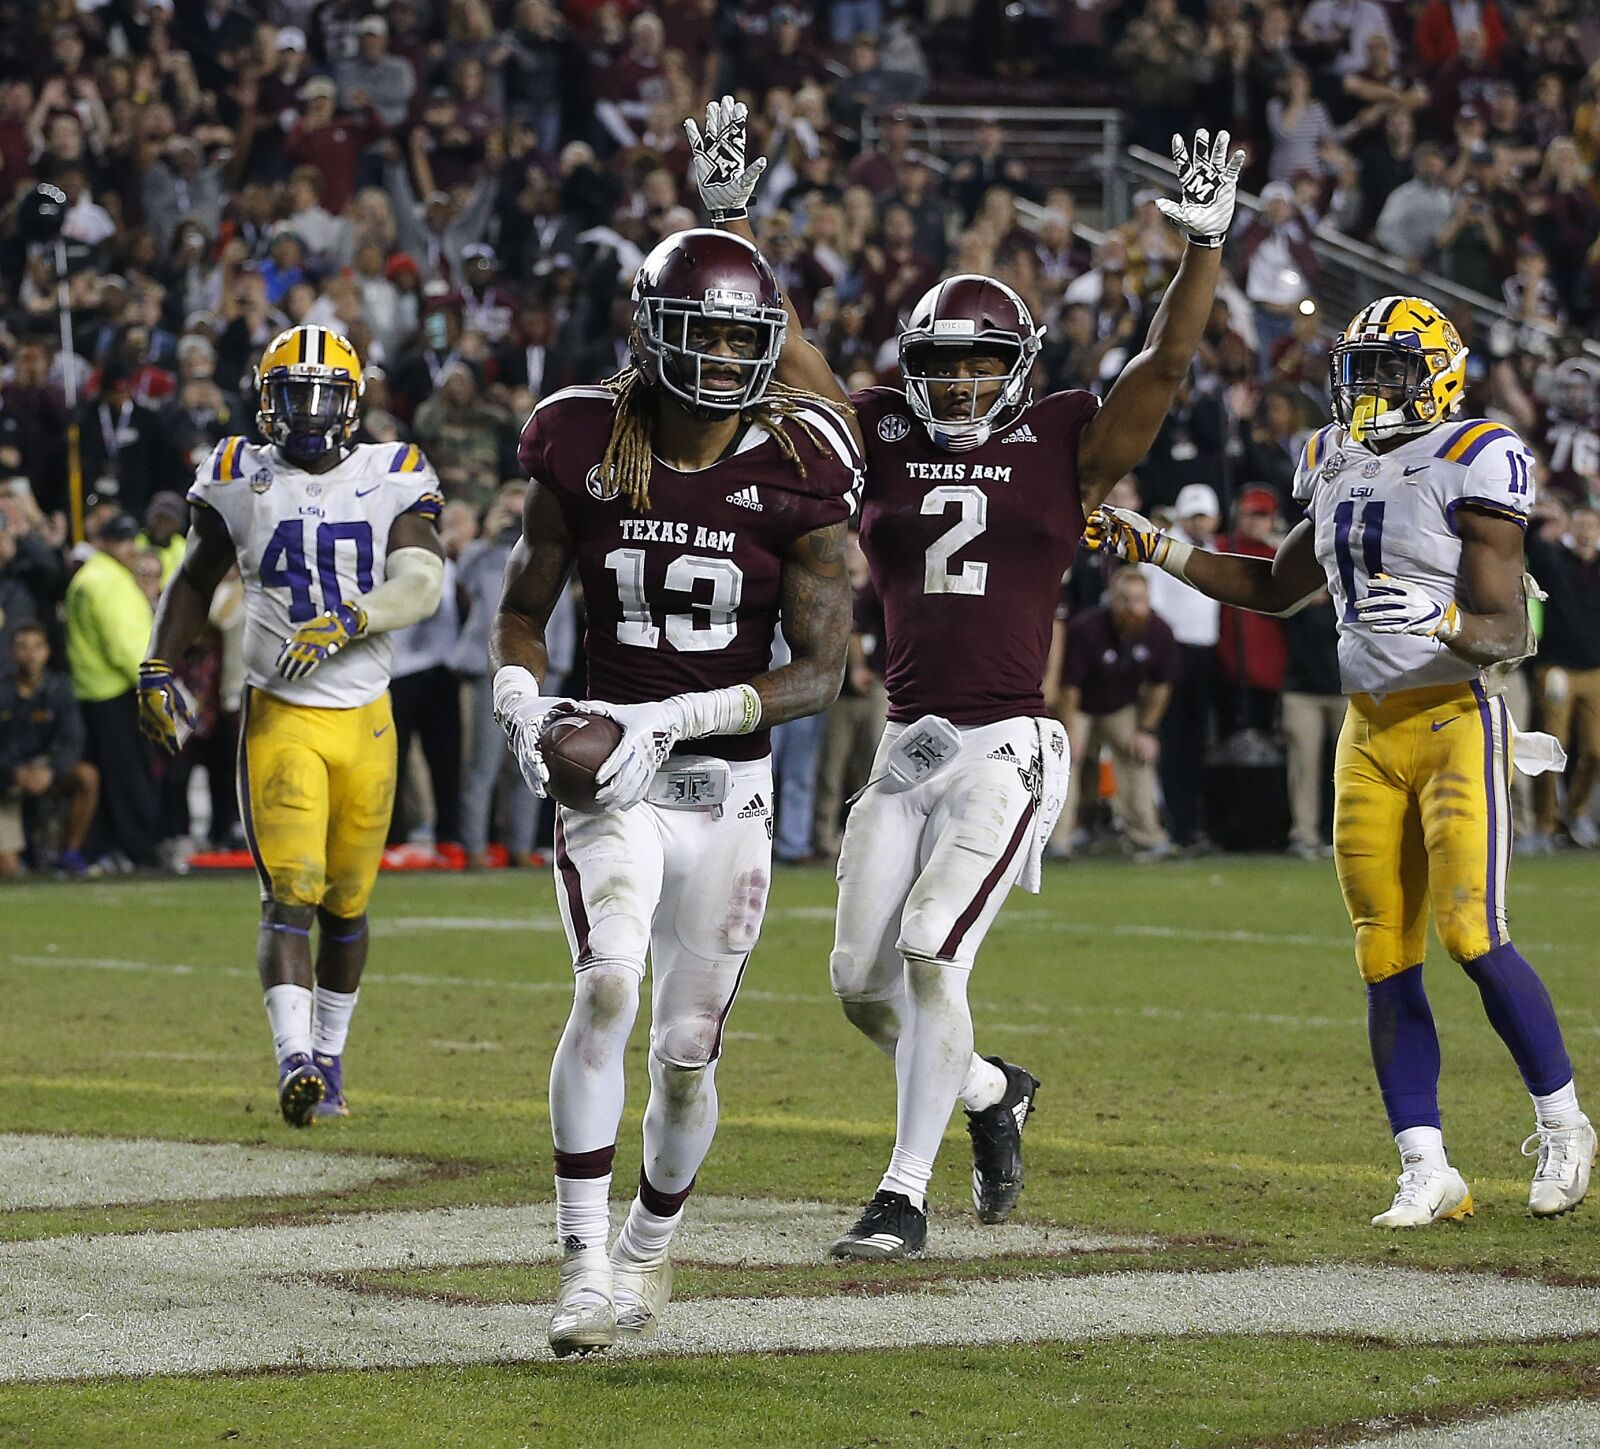 Texas A&M football: LSU fans can stop crying about officiating now